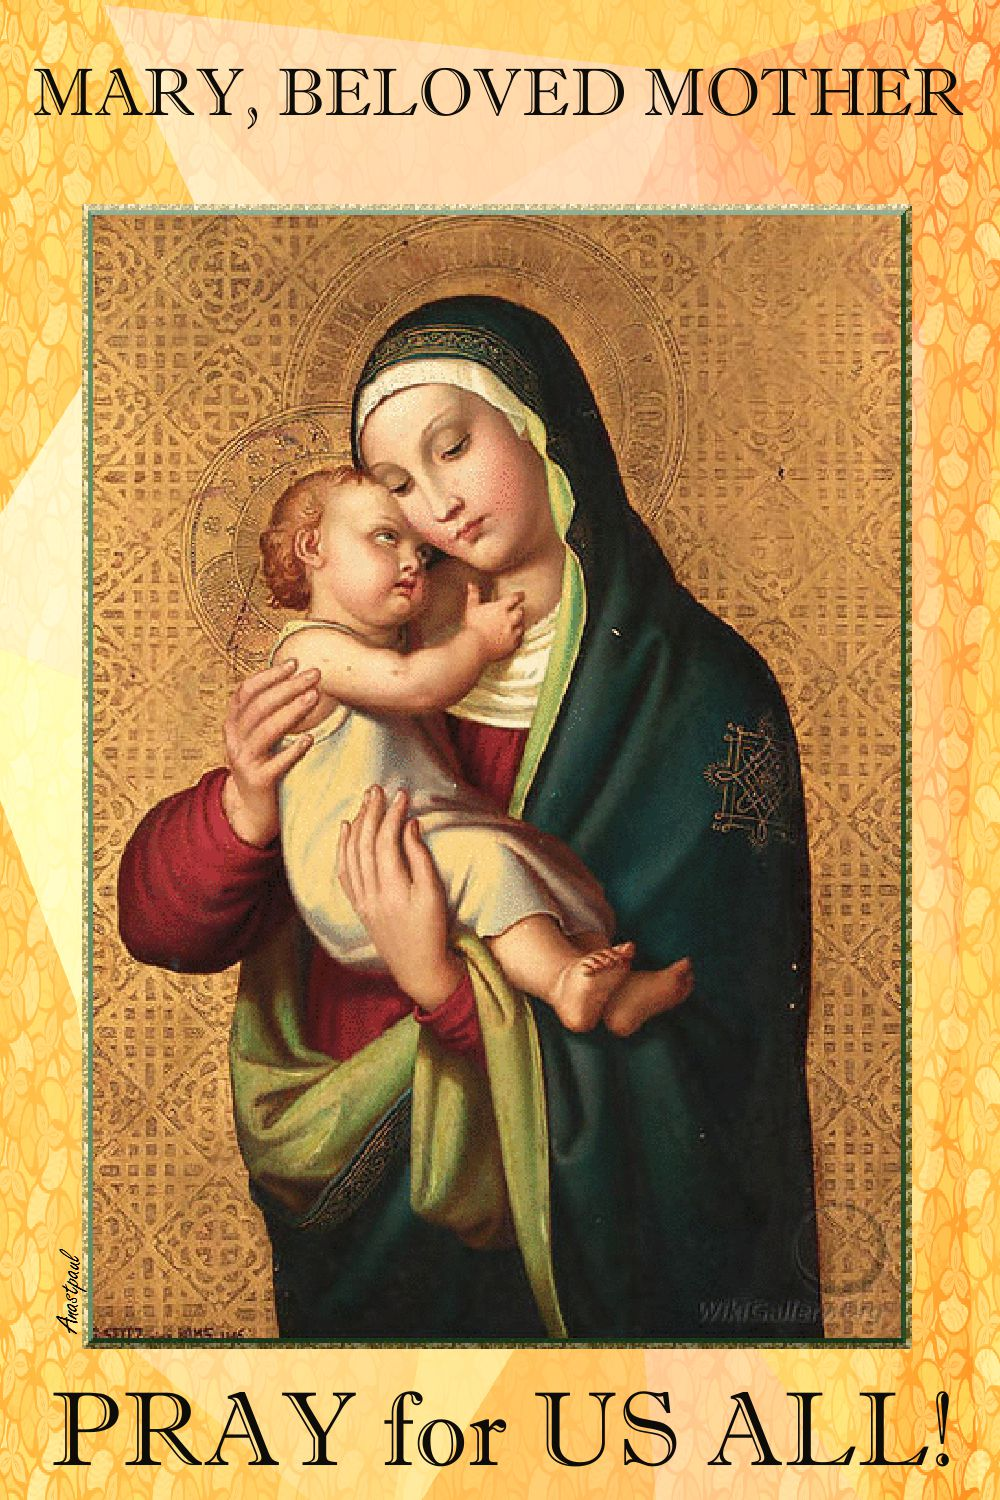 mary beloved mother-pray for us all